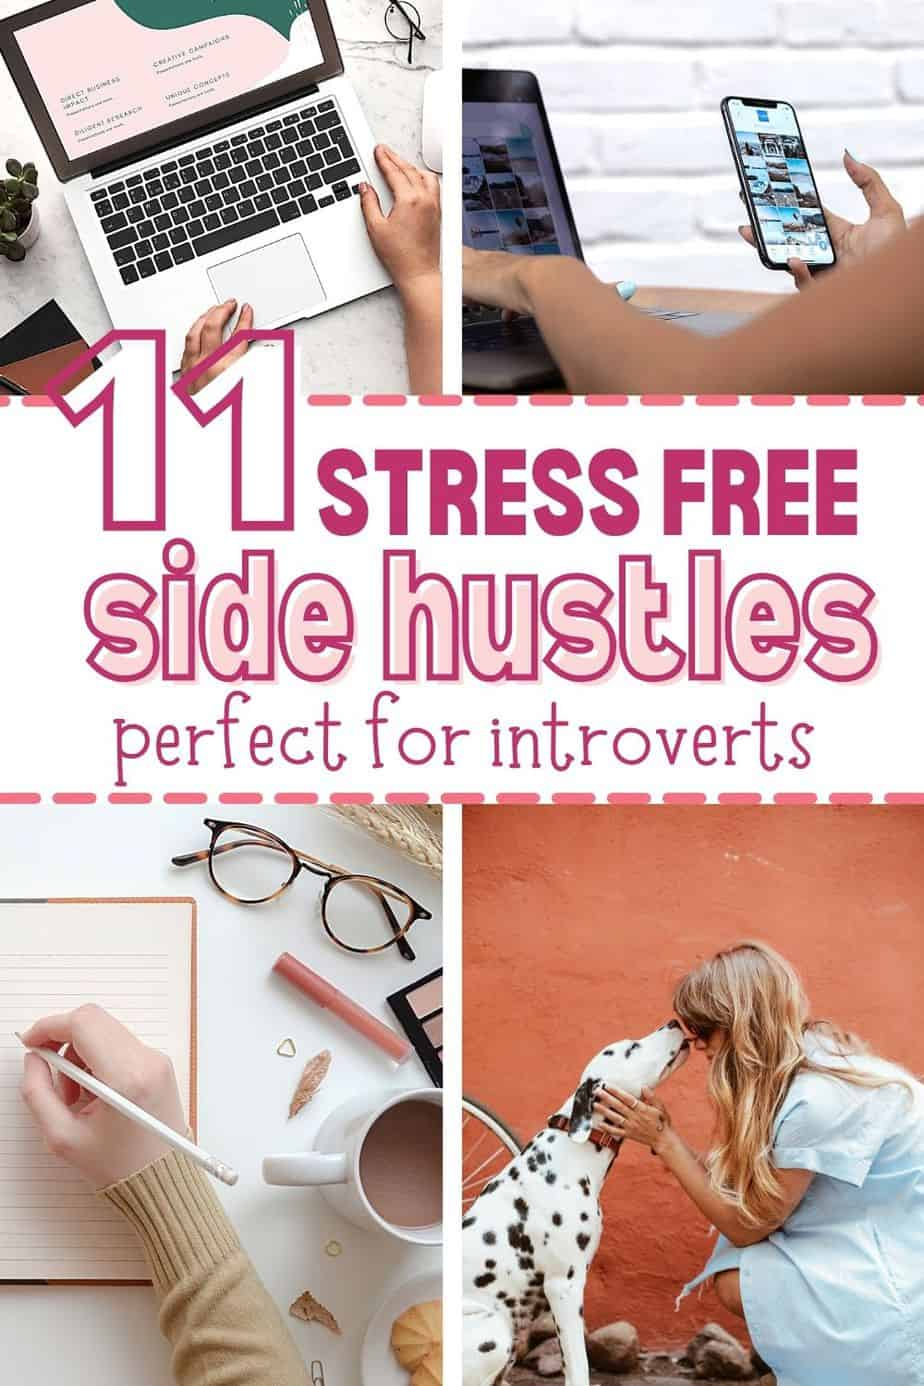 11 stress free side hustles for introverts